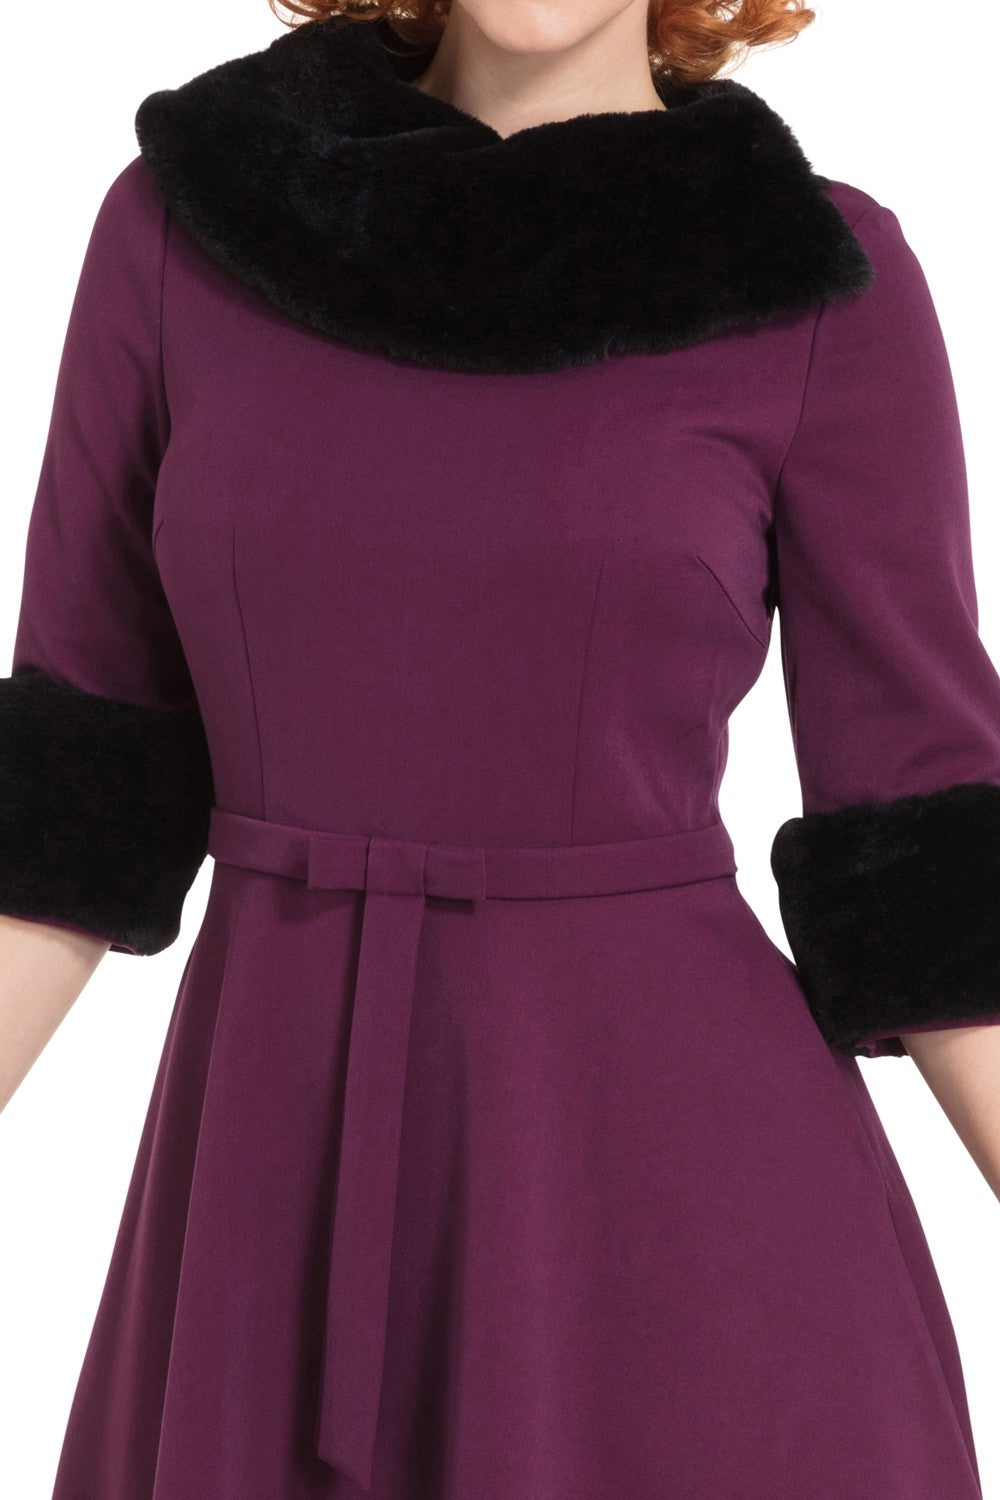 Belle Fur Collar Swing Dress